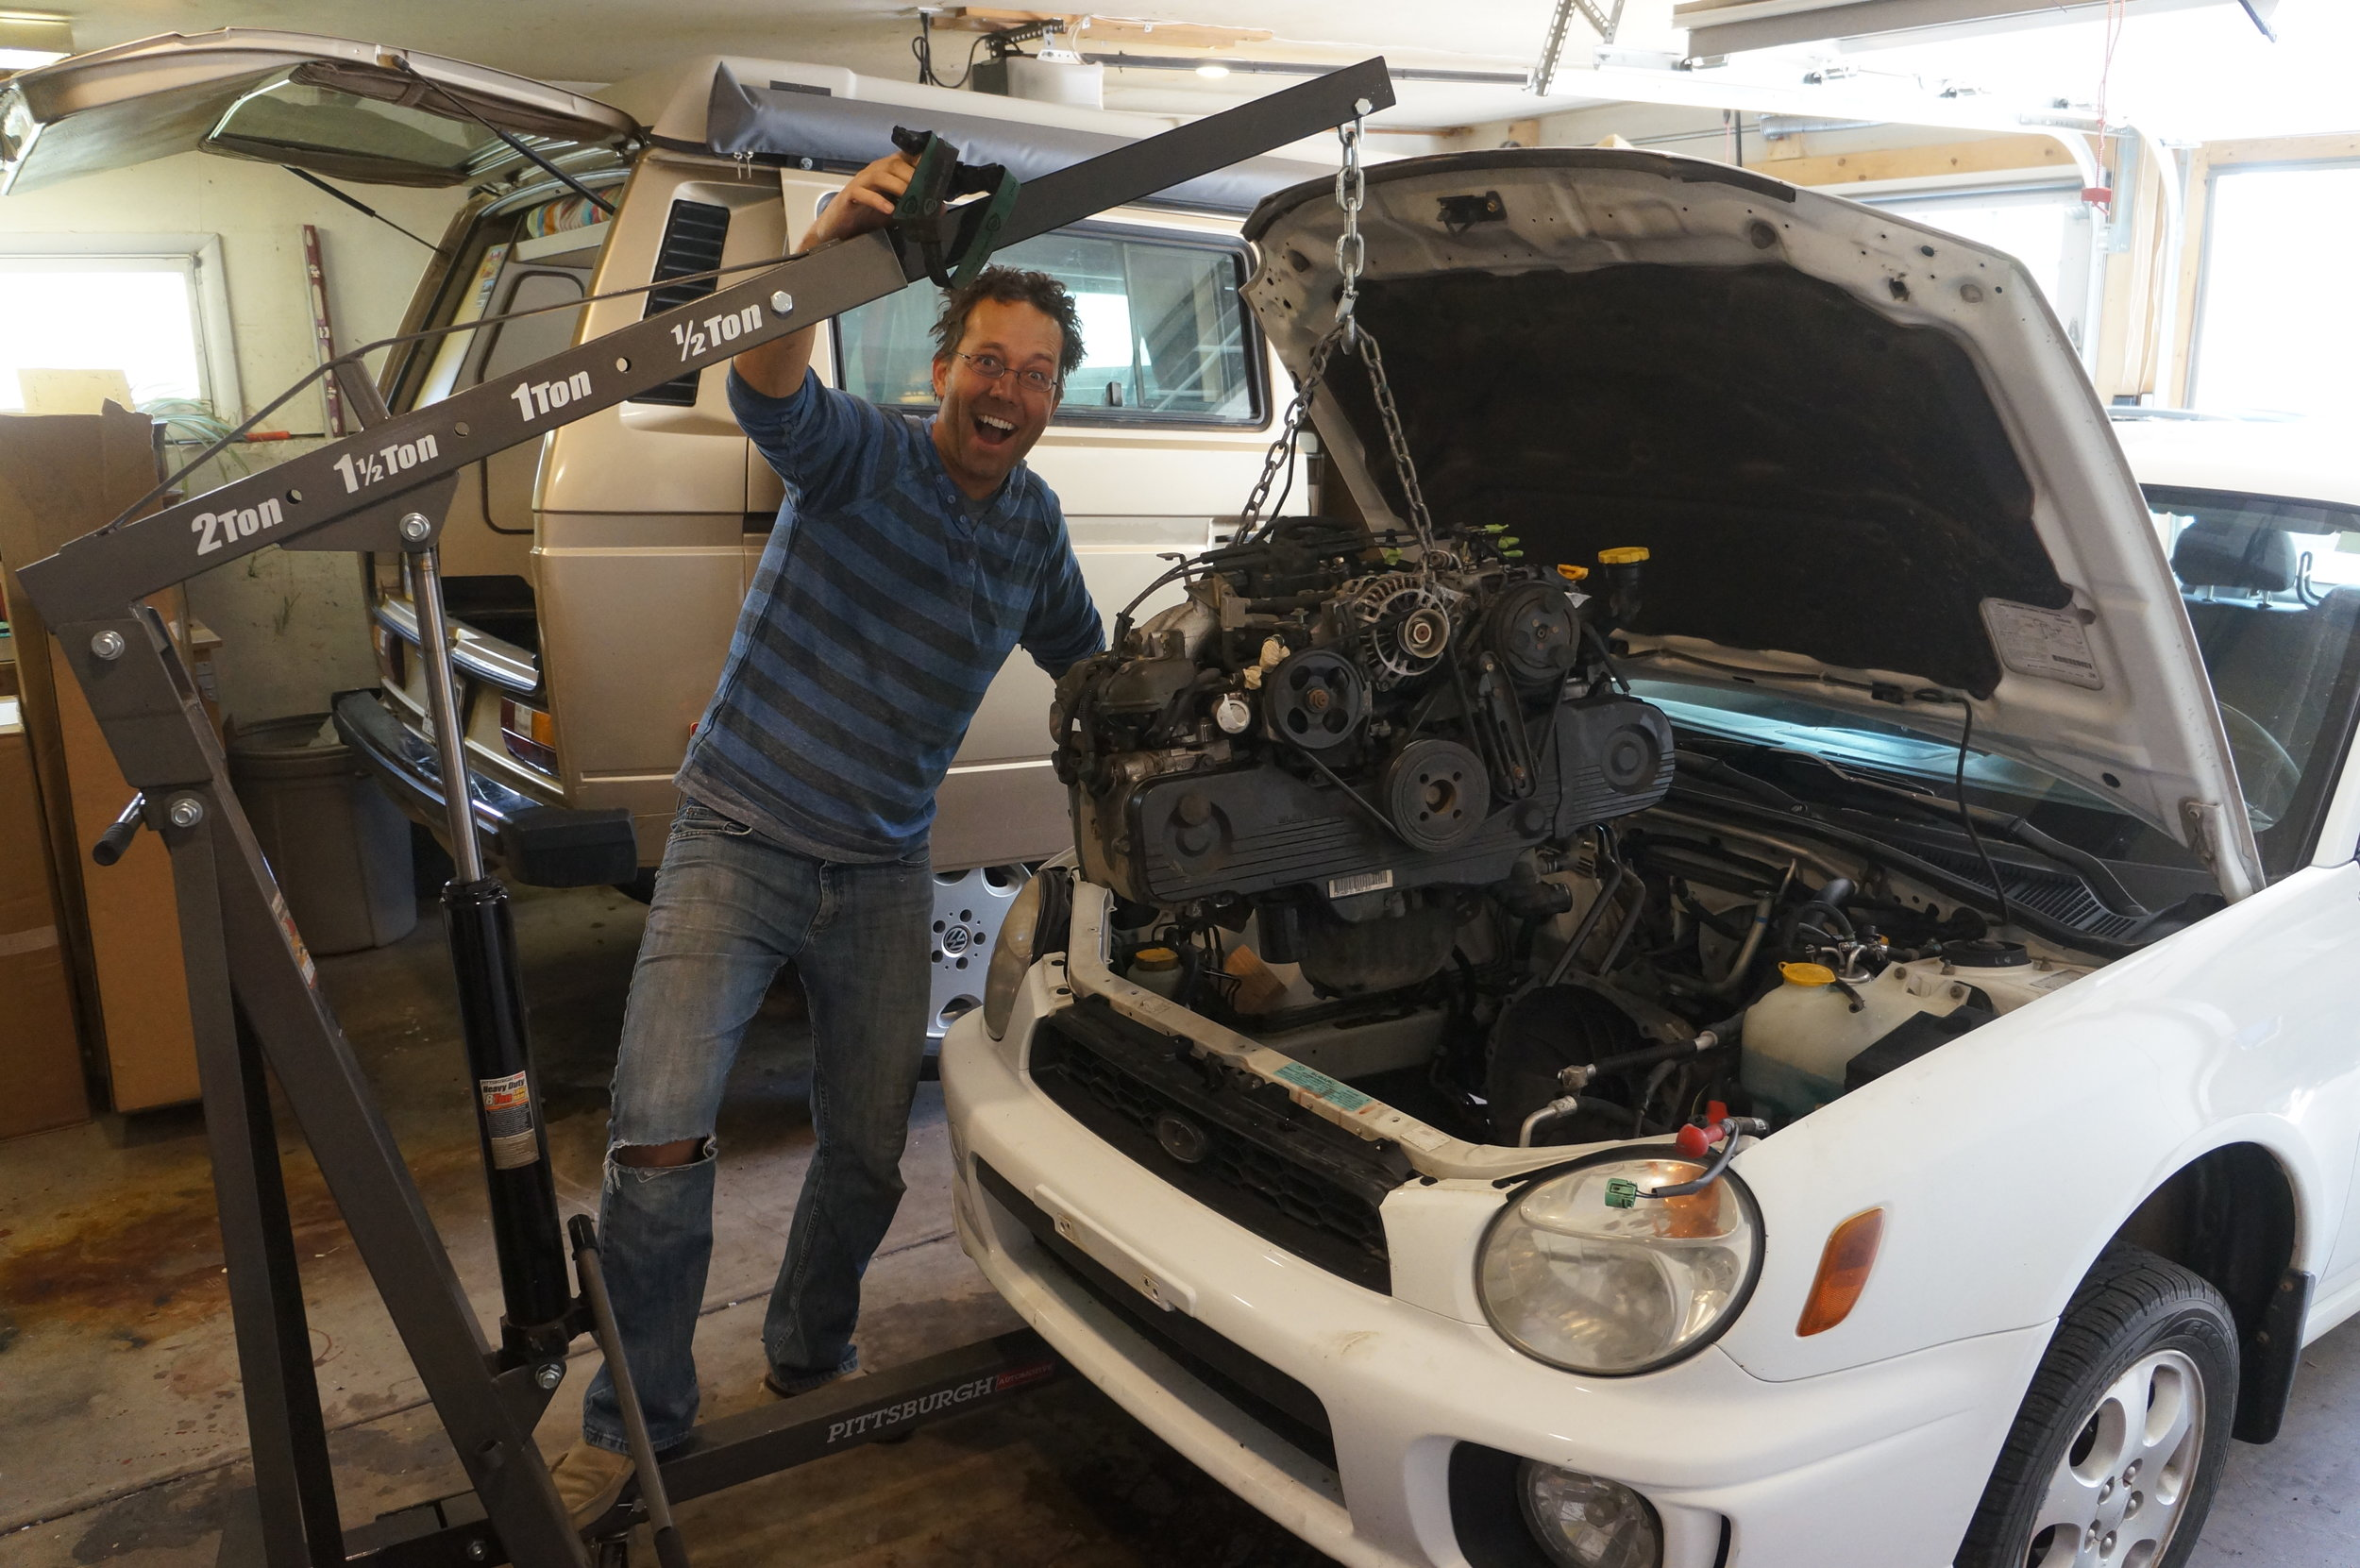 """April 2017 - Chip, a.k.a. """"The Mad Scientist,"""" pulling out the Impreza engine so Spud can soon keep up with other cars on the road. Don't let him anywhere near your Subaru. Note the headlamp-induced hair style which is vaguely reminiscent of the sweet bowl-cut he sported in high school. Try not to be jealous."""